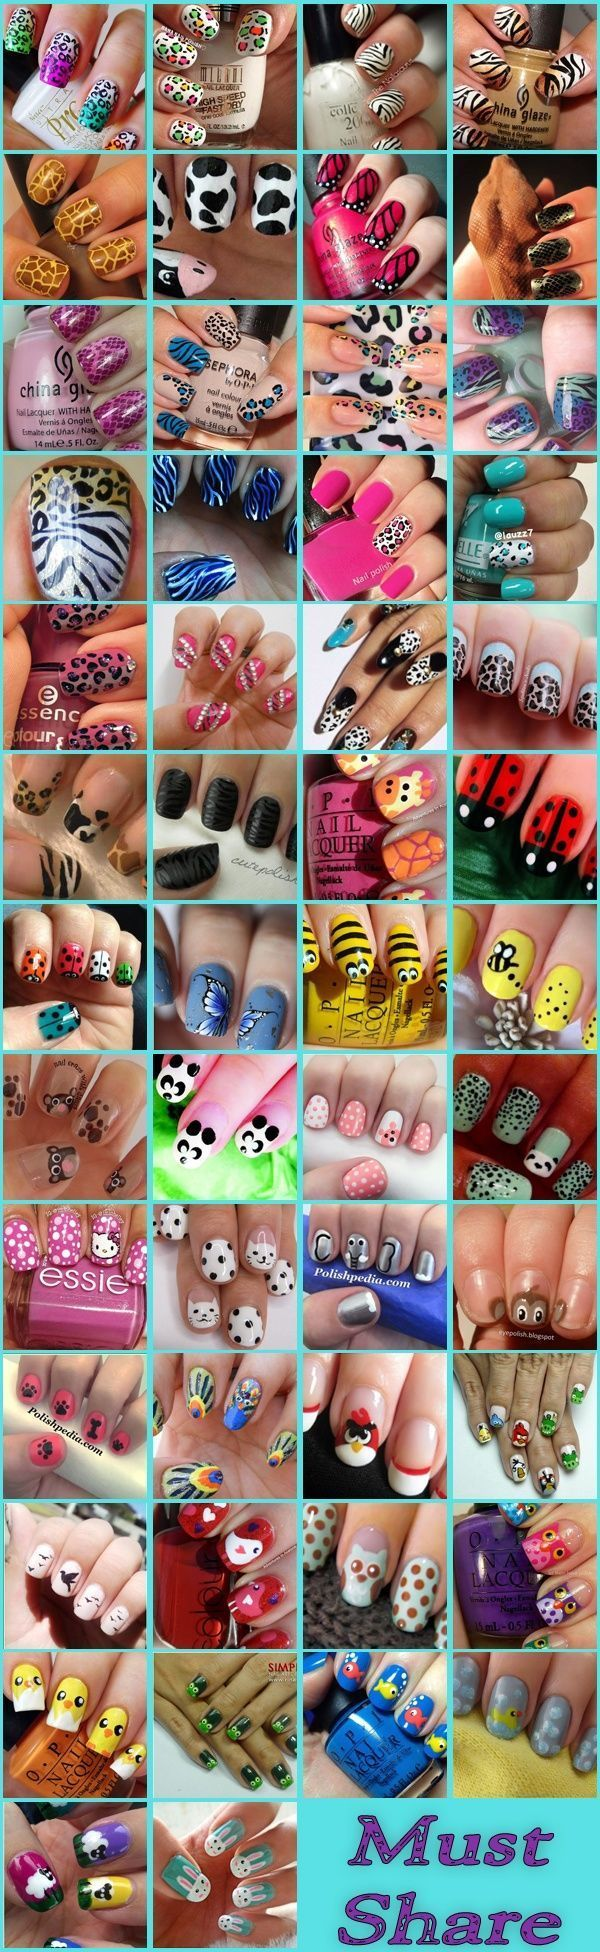 nice 50 Amazing Nail Art Designs For Beginners With Pictures And Styling Tips